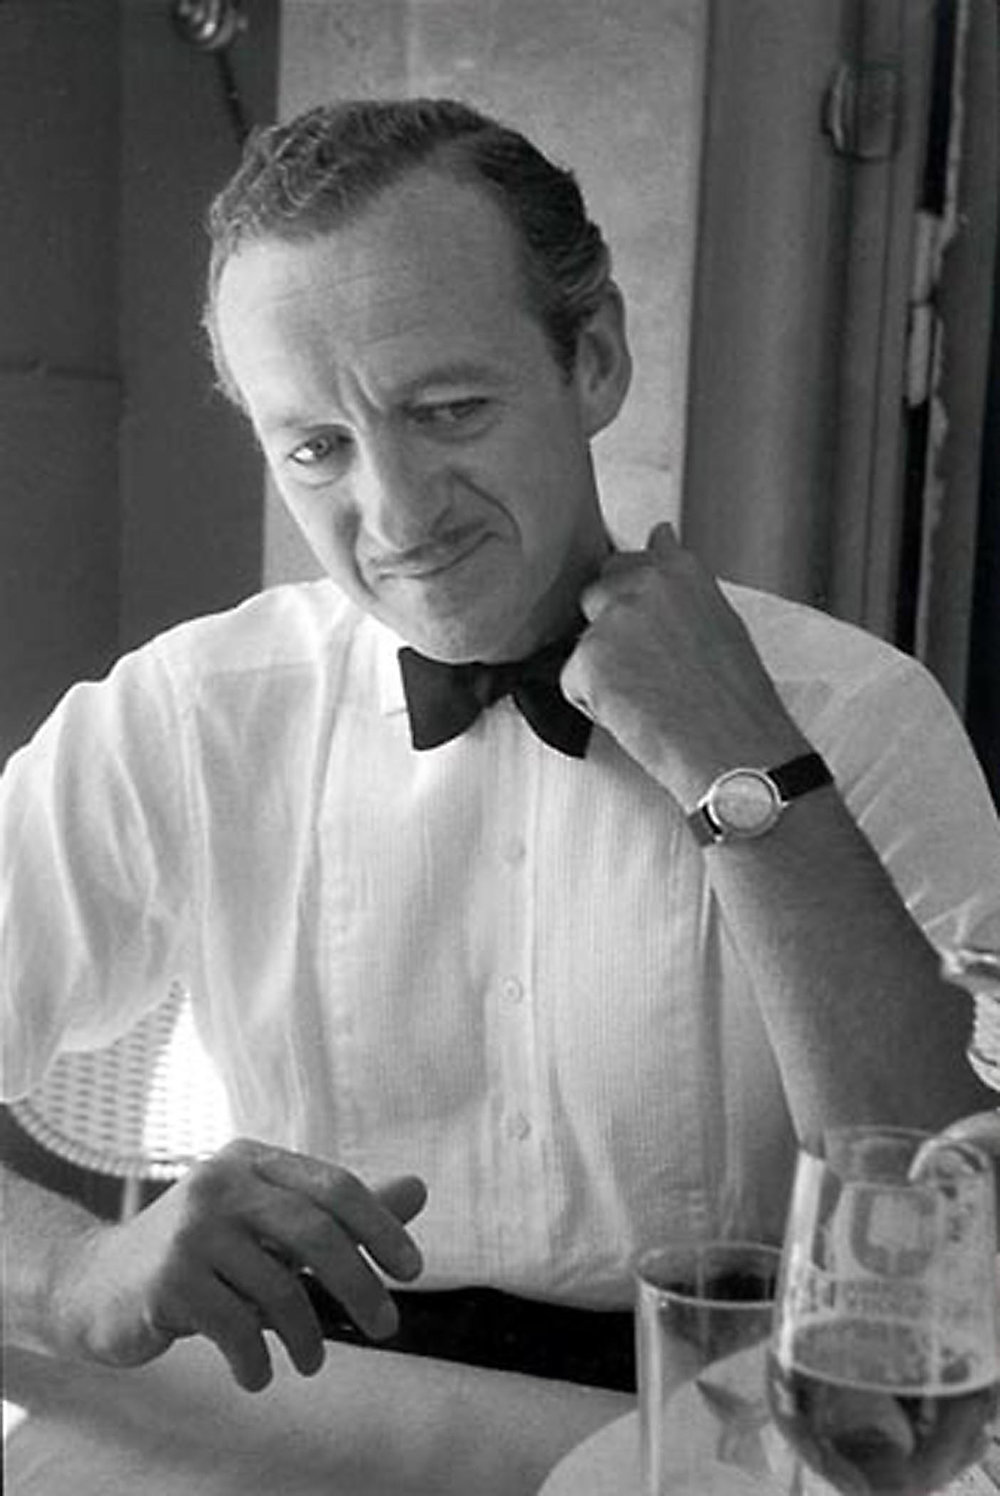 HANNON_david_niven_(paris)_1959_p11x14_high.jpg